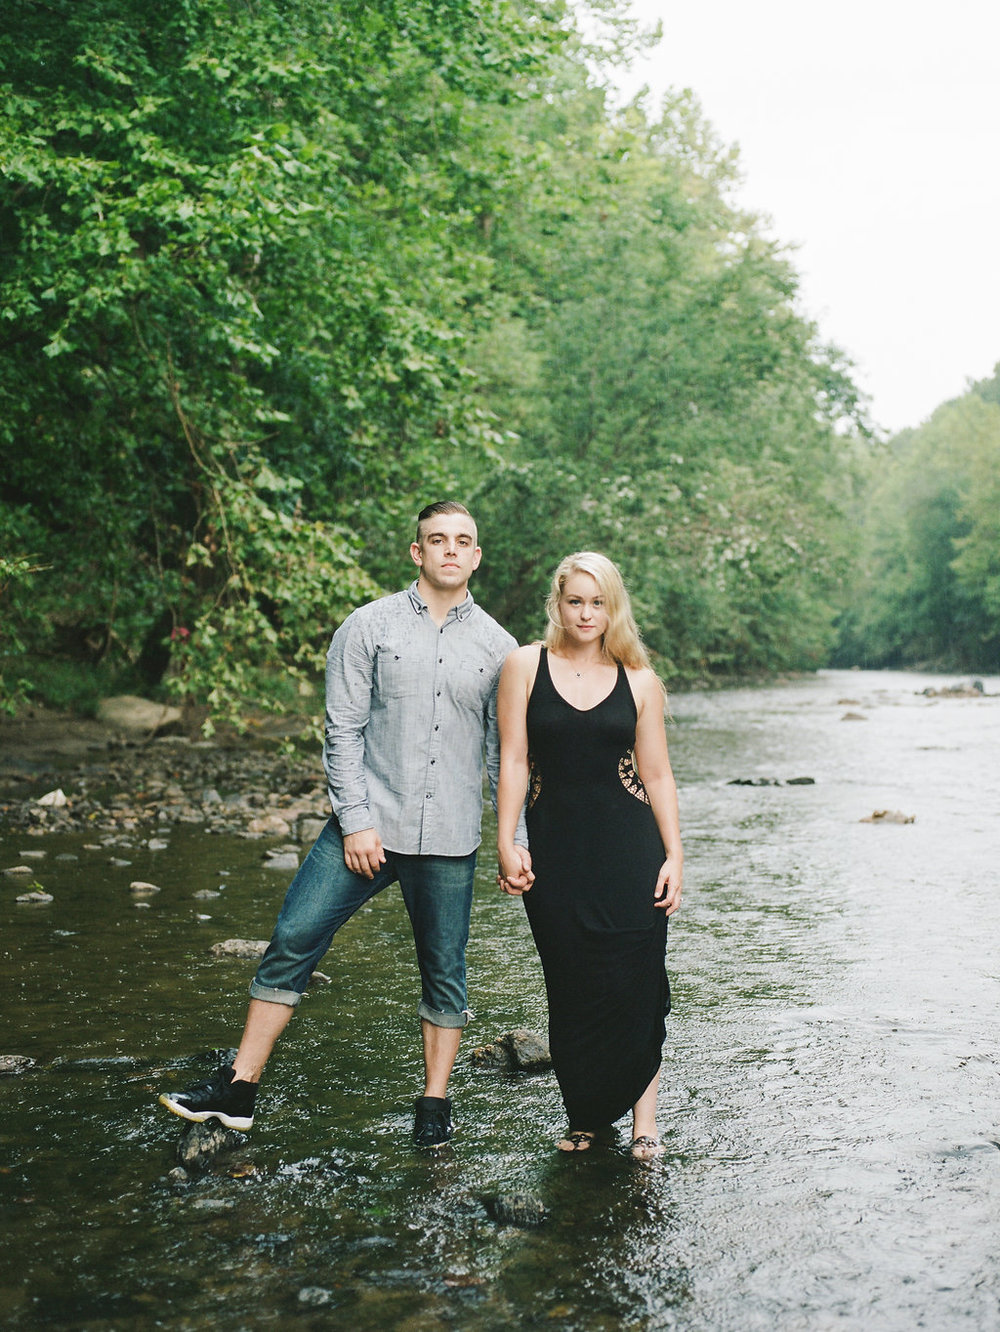 patapsco state park maryland engagement photos fine art wedding photographer lissa ryan photography